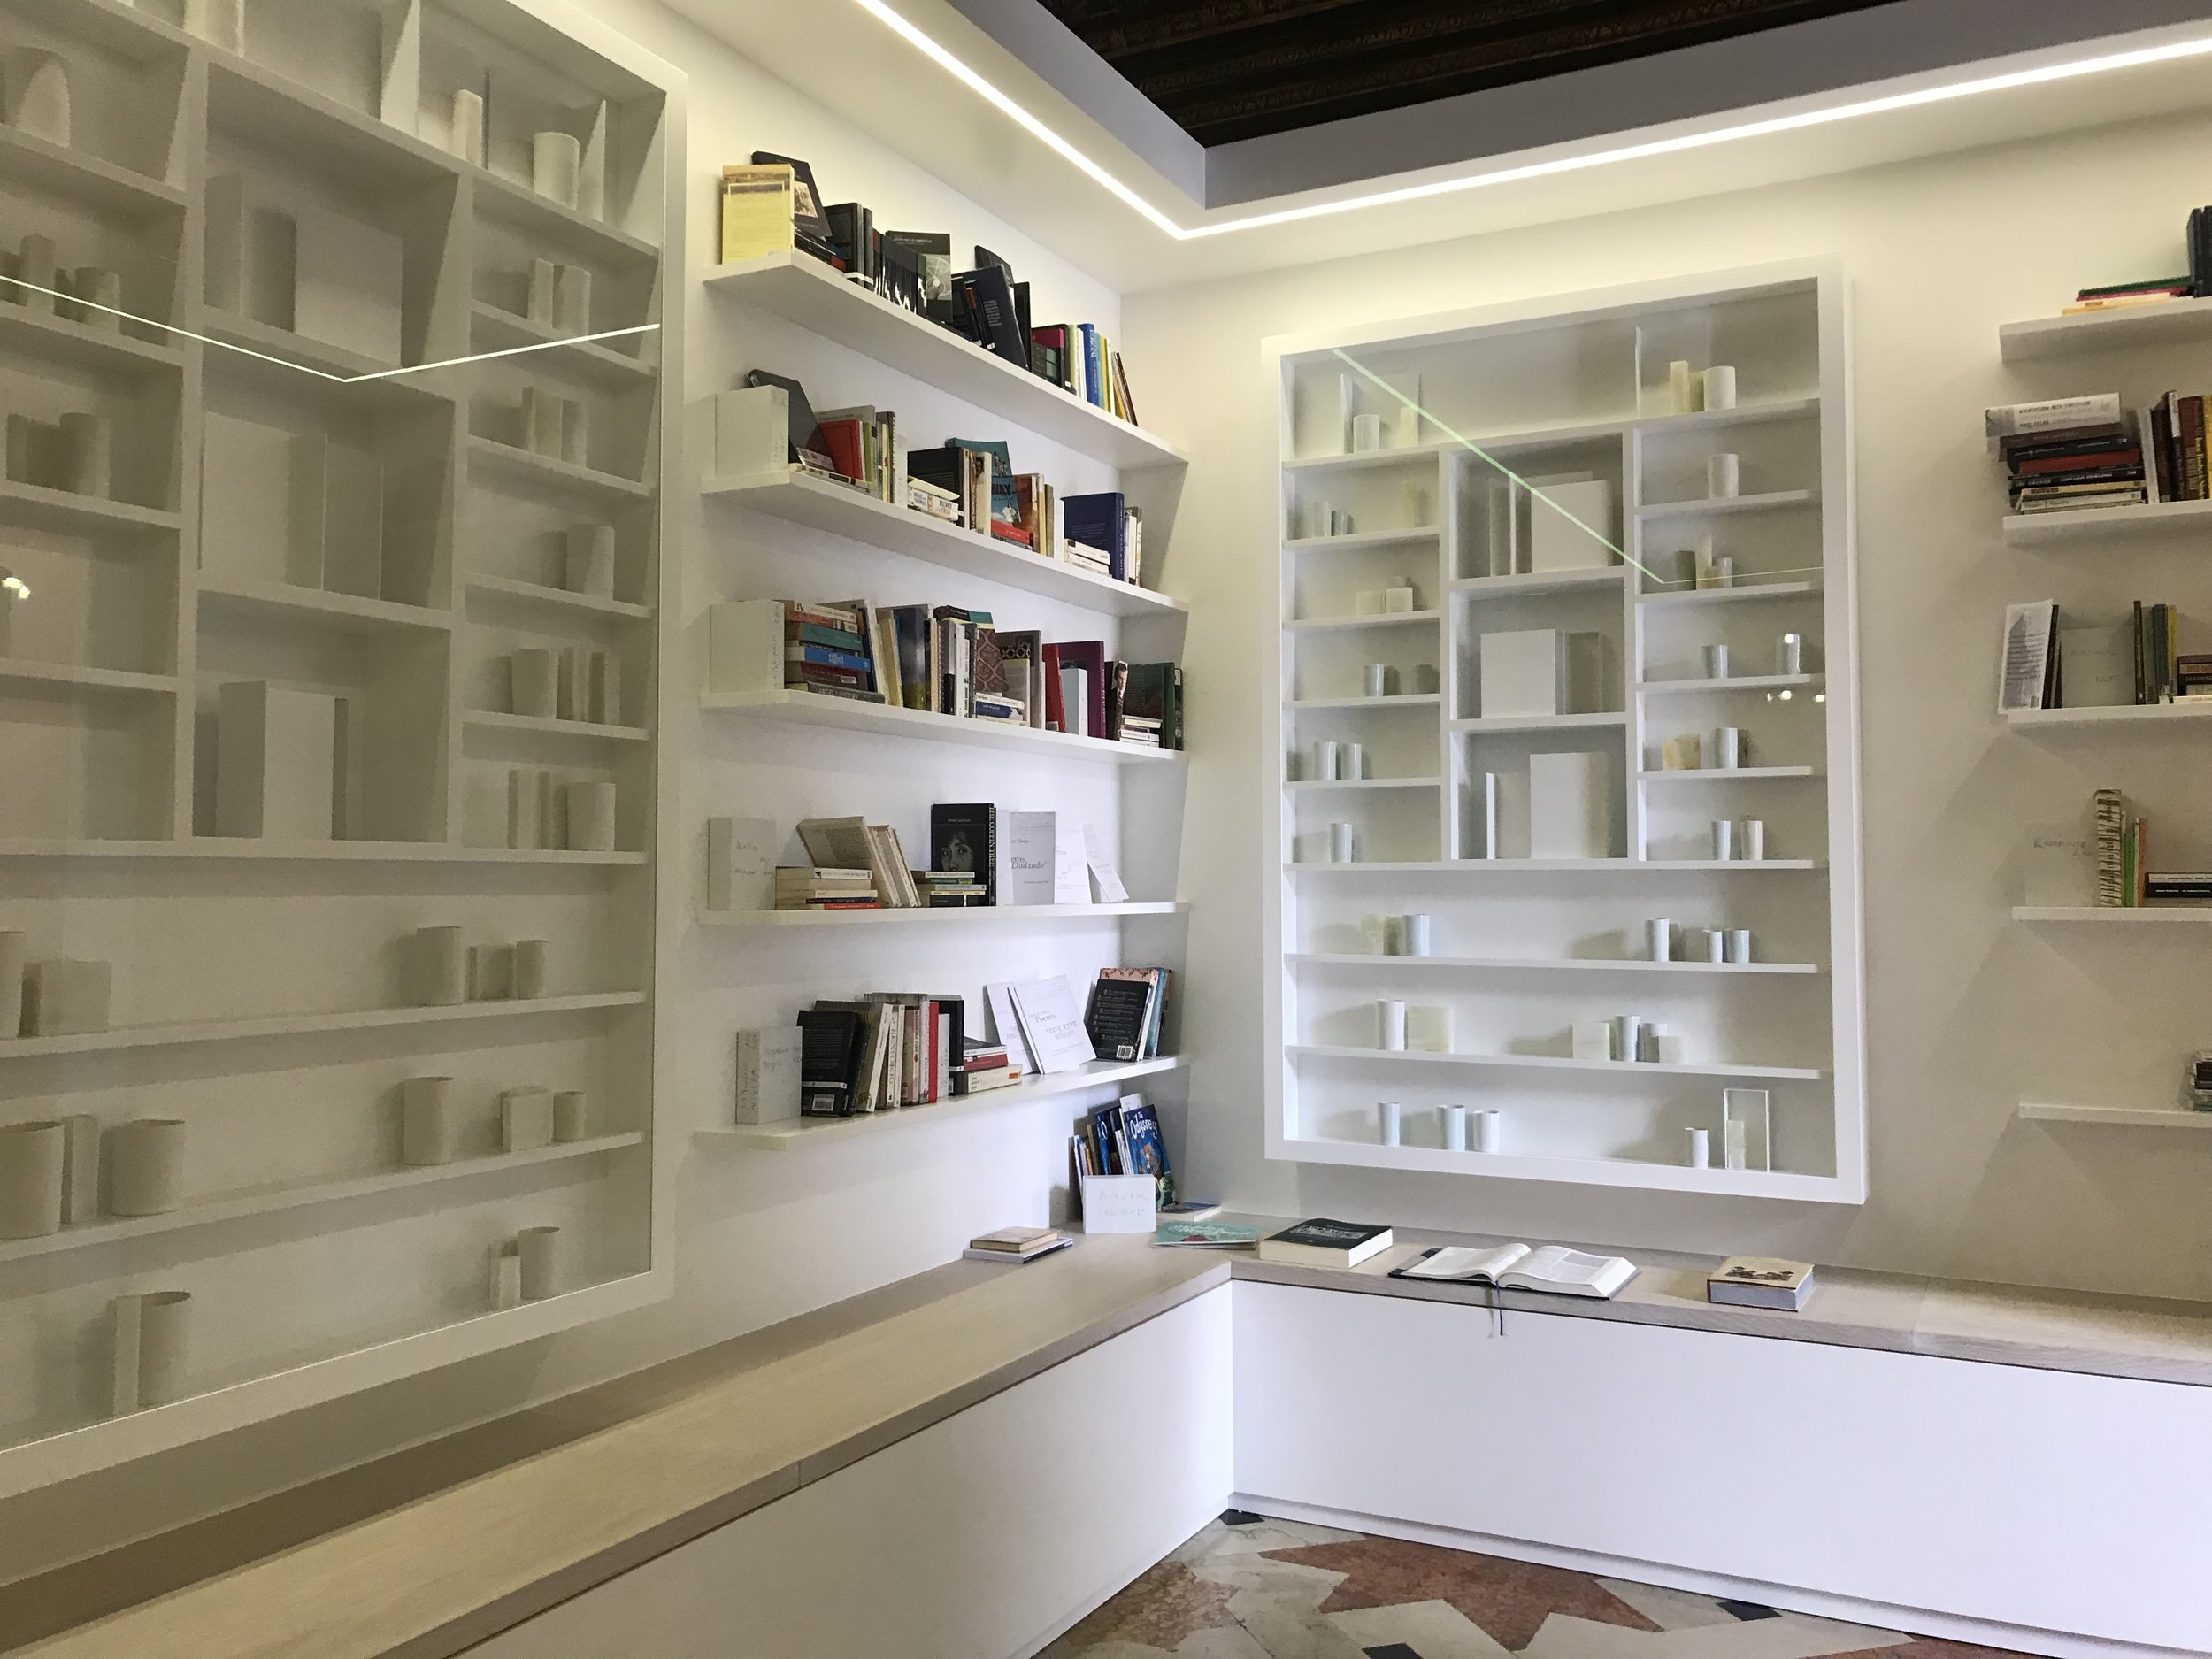 Edmund de Waal's 'Psalm' at the Ateneo Veneto, starting point for Clay Conversation, Venice on 18 September 2019